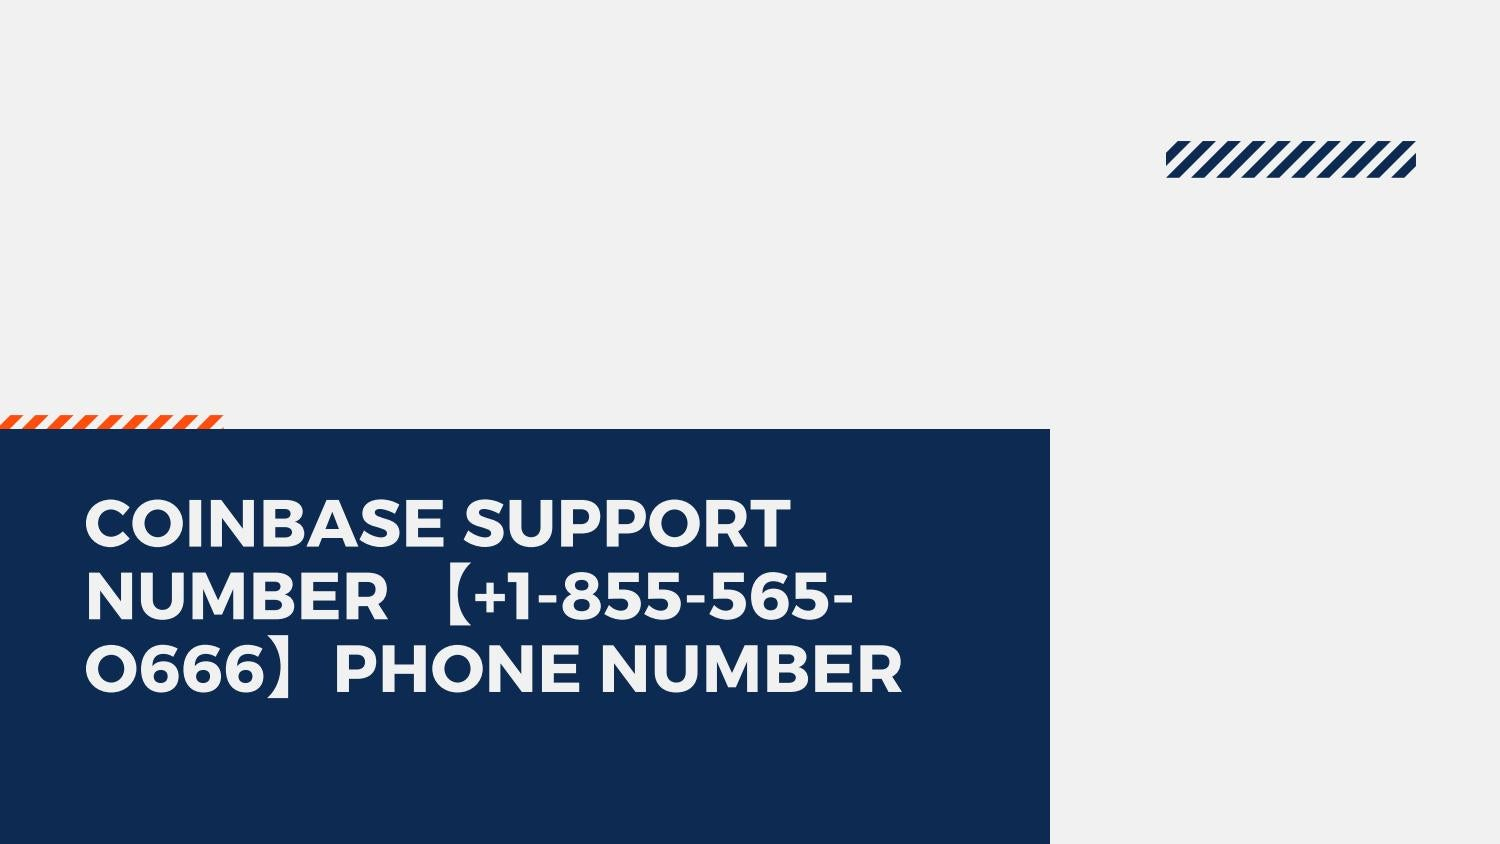 coinbase support phone number